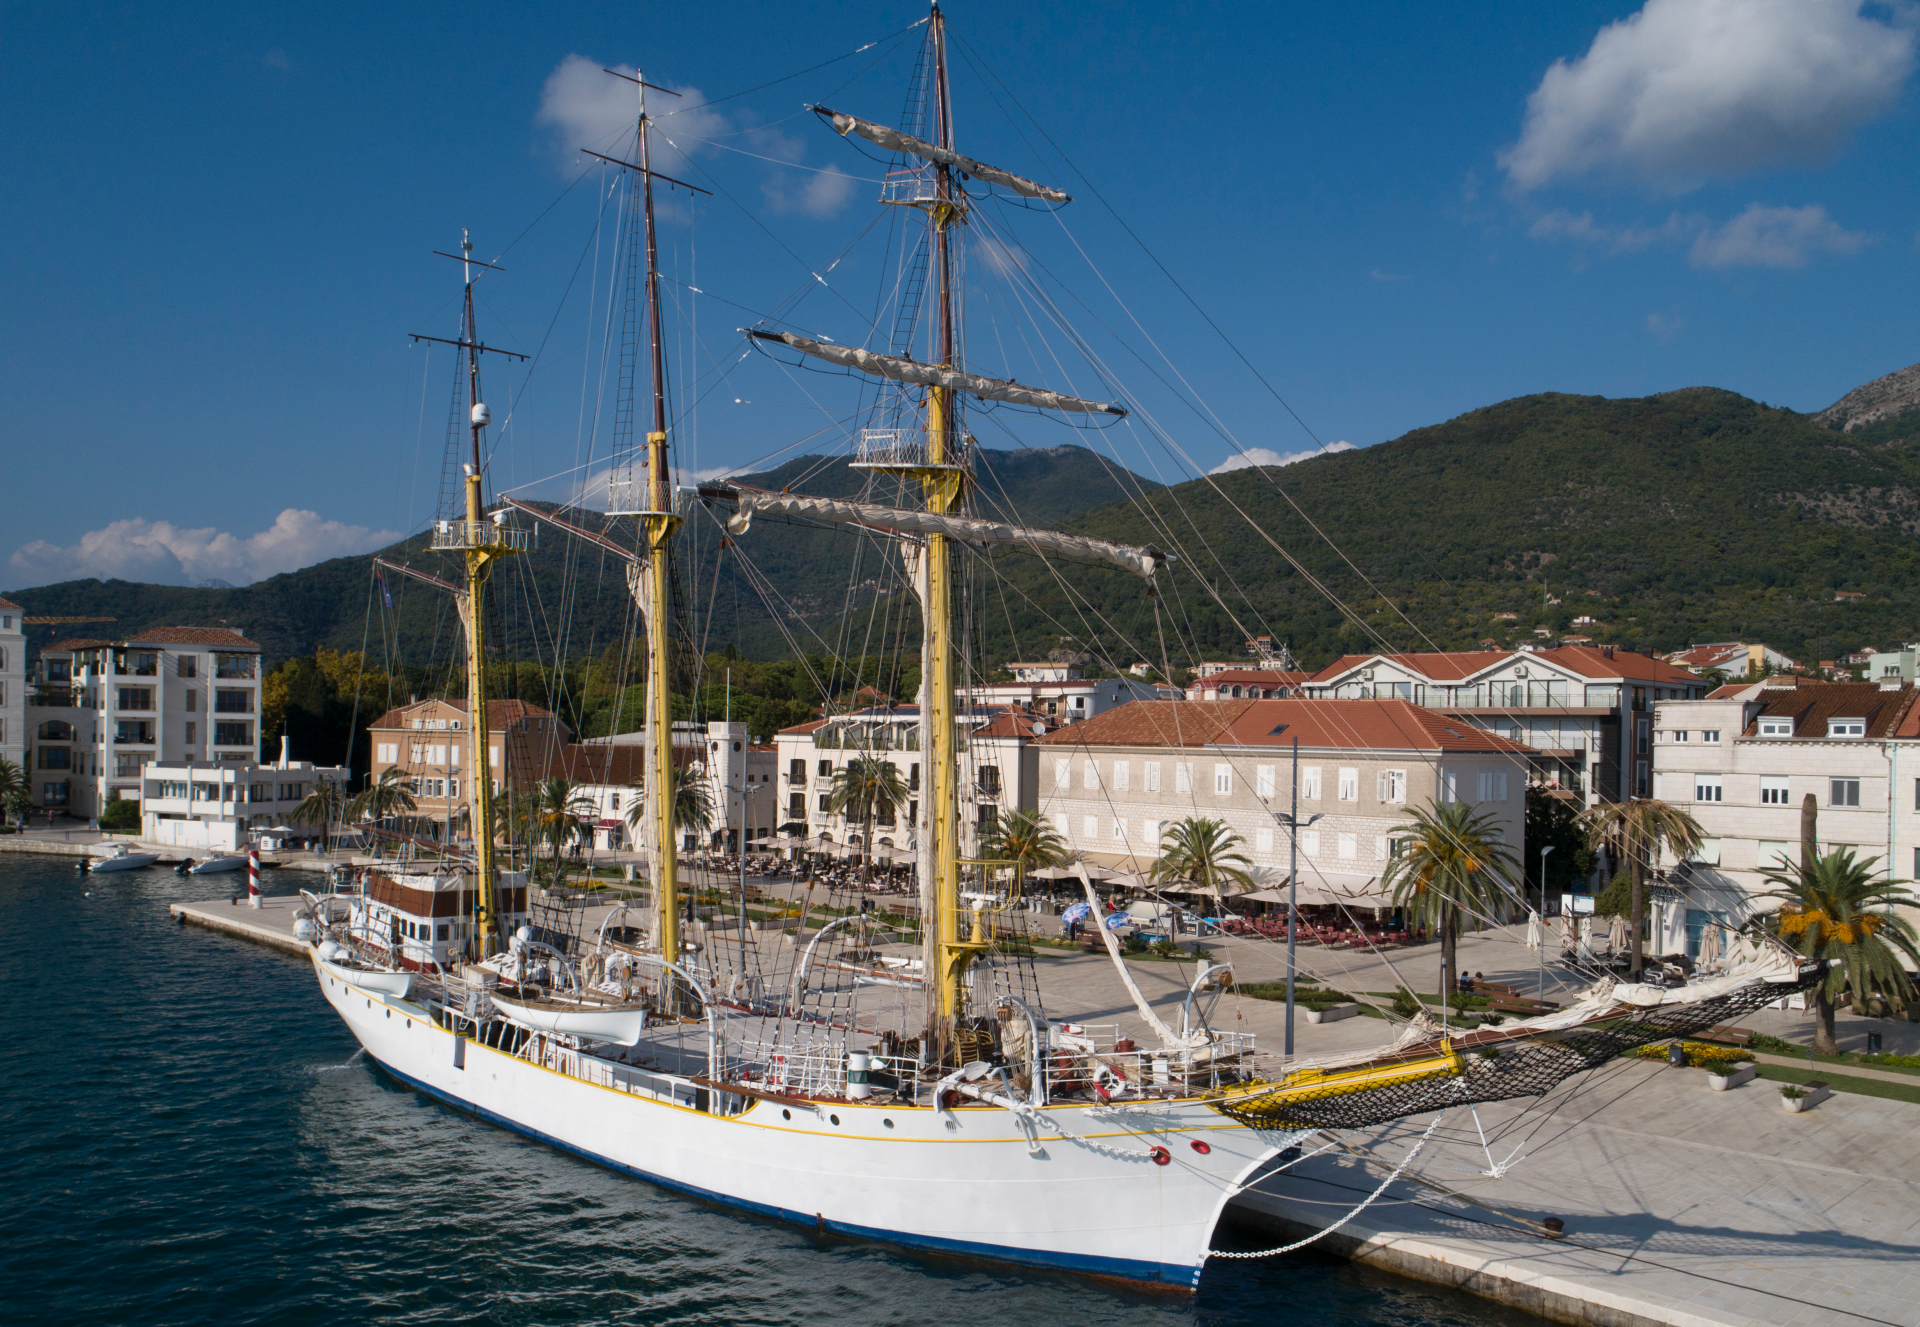 Westlake Legal Group ContentBroker_contentid-8f3fe6fdbdb145fc9431d6b84b9d1ff3 Drugs found on Montenegro military training ship PODGORICA, Montenegro fox-news/world/world-regions/middle-east fox-news/world/world-regions/europe fox-news/world fnc/world fnc Associated Press article 1981915d-1ce4-5b71-bbbb-d35f2b943a82